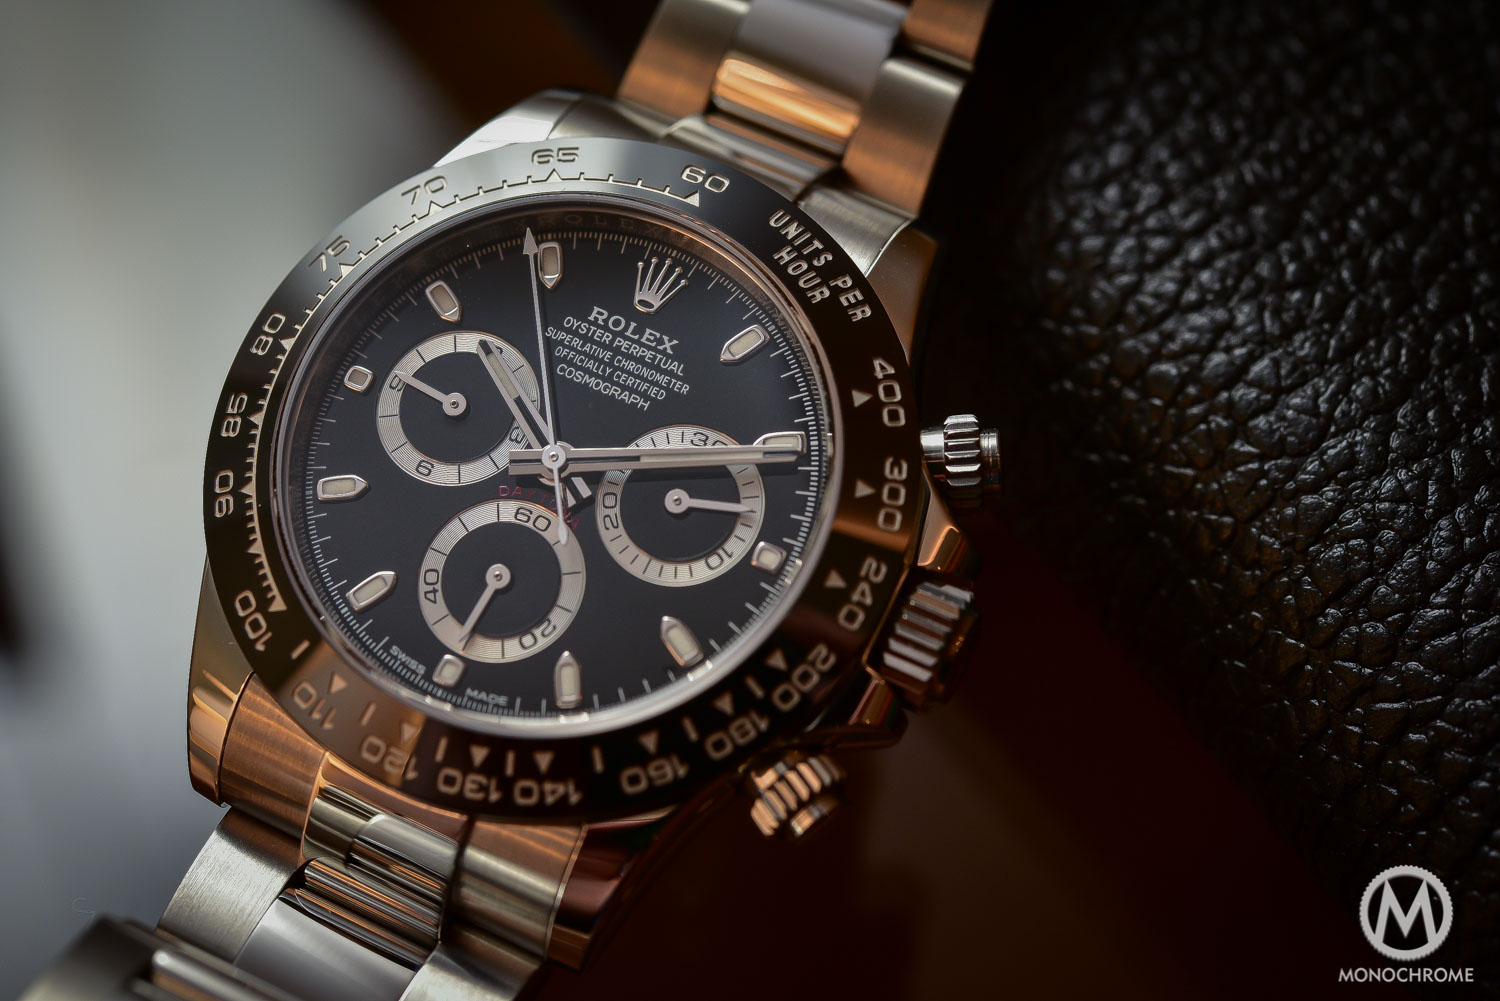 Rolex Daytona 116500LN in steel Cerachrom ceramic black bezel - 8